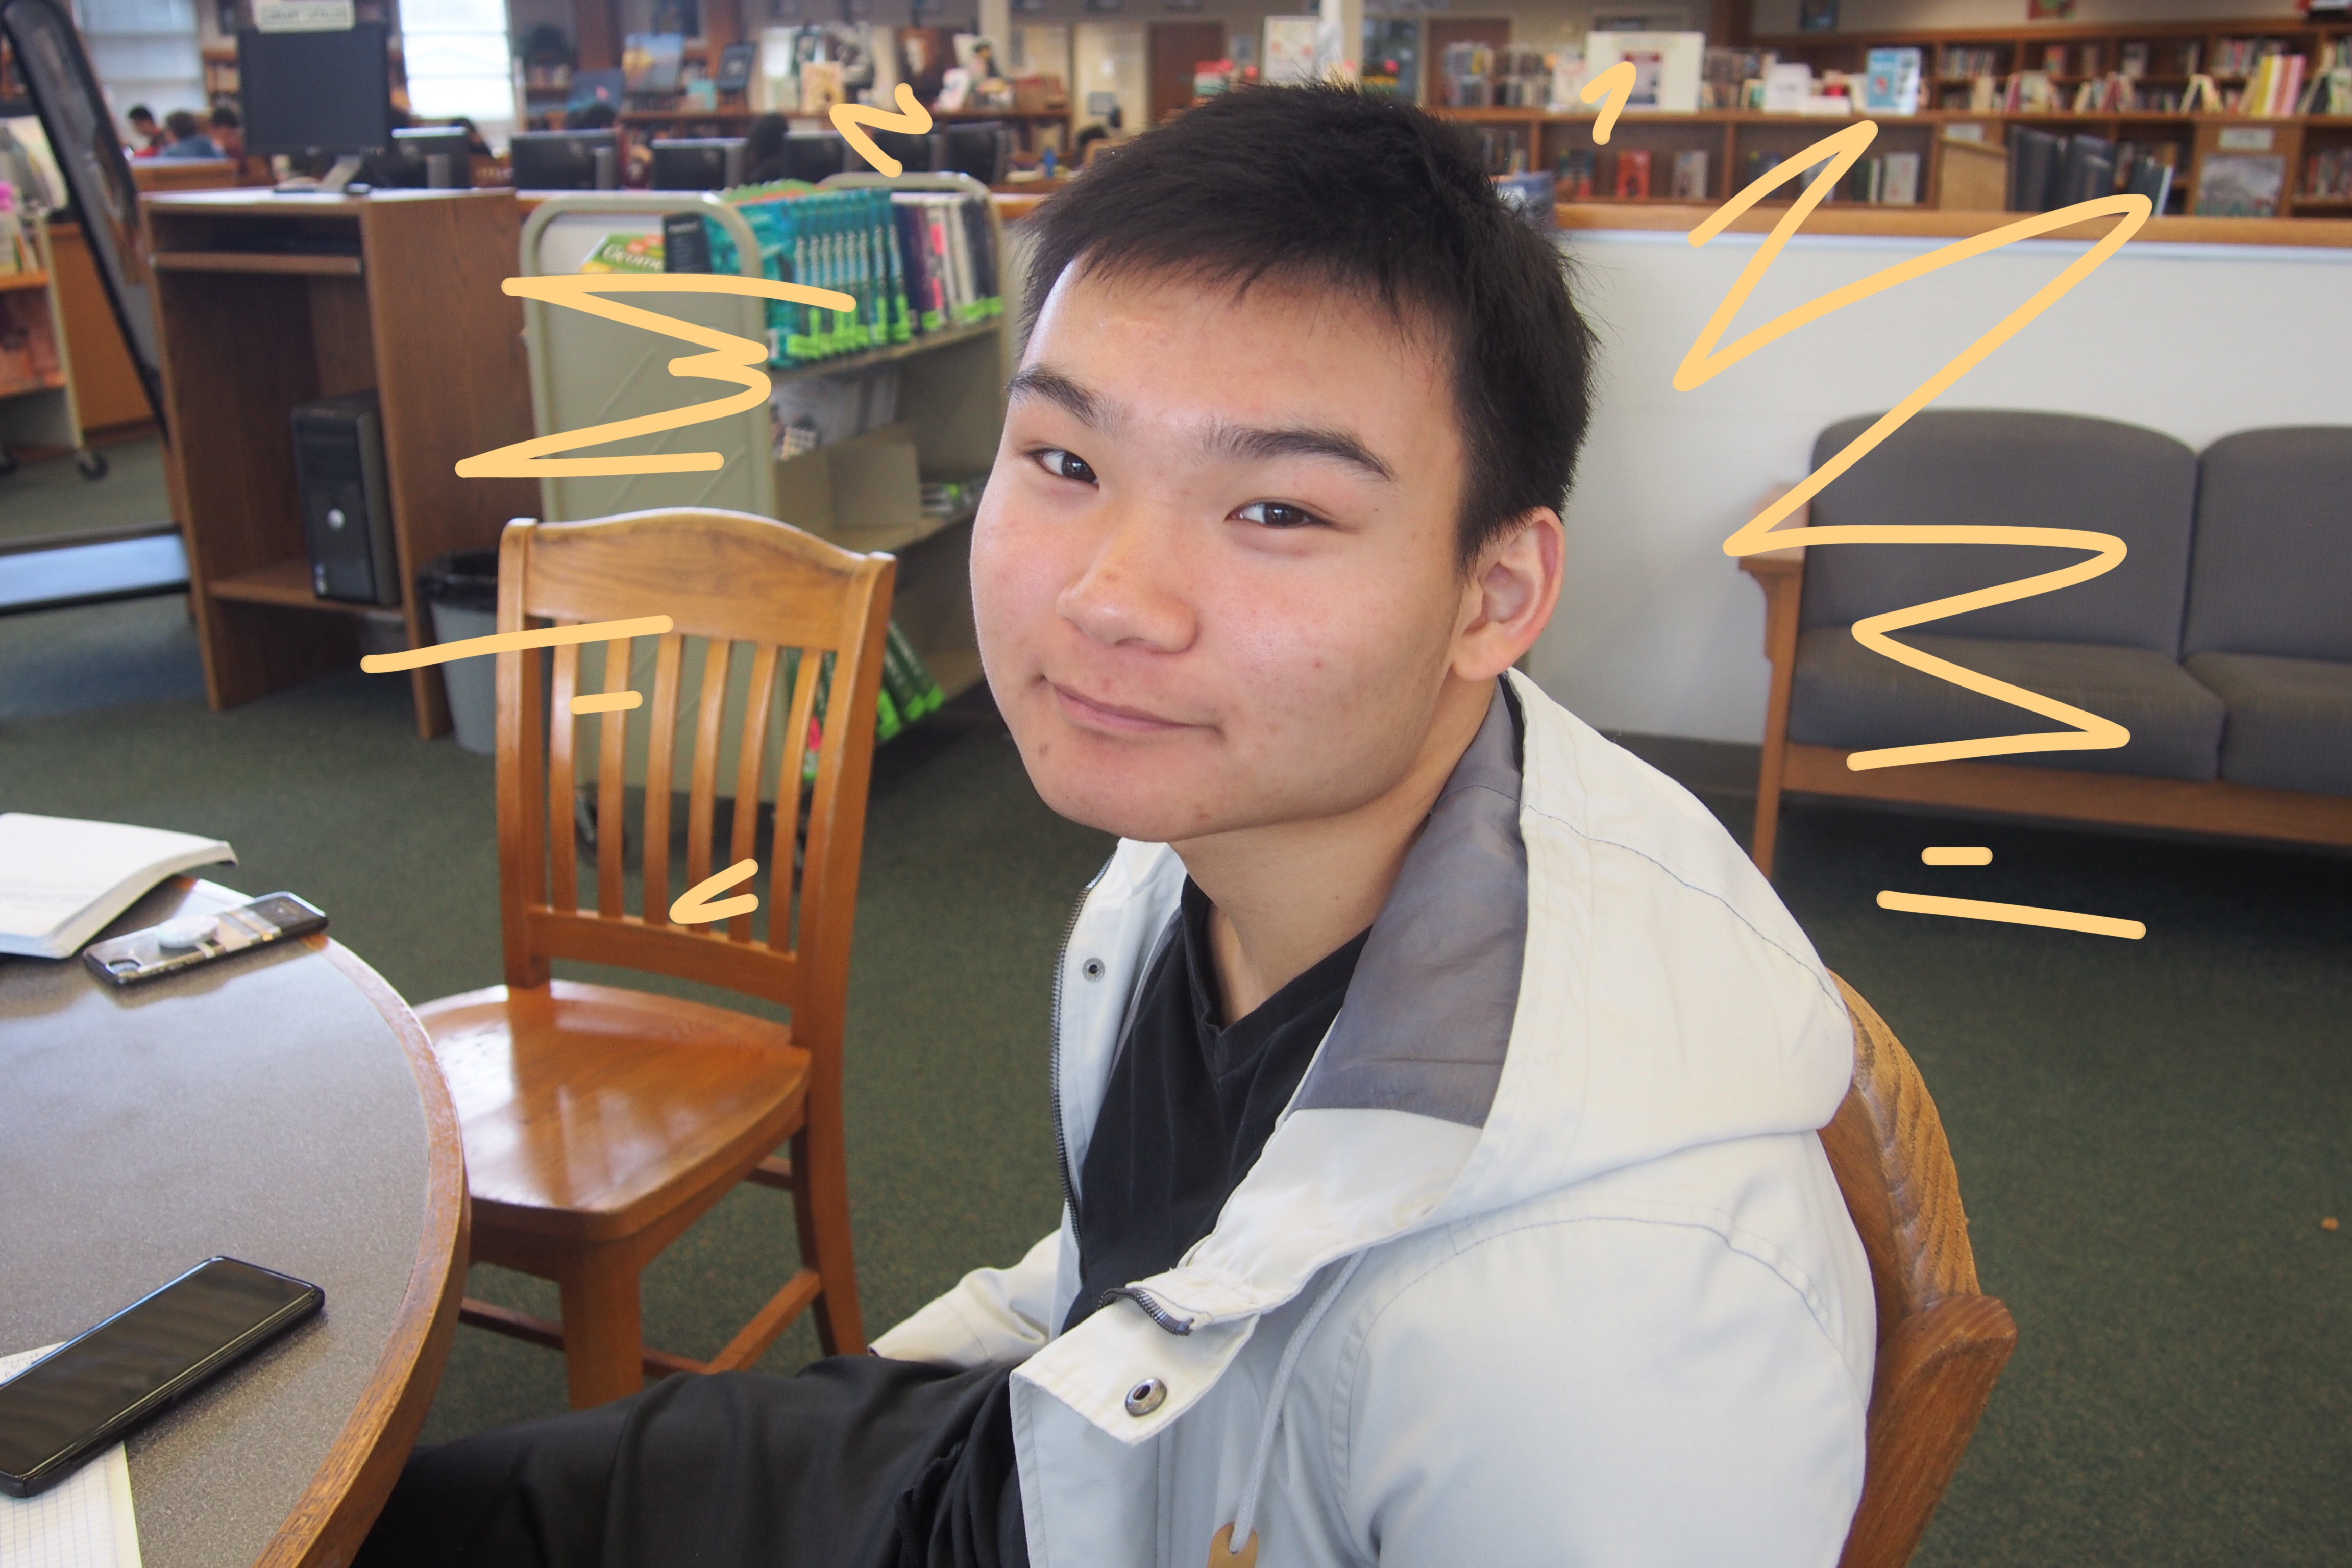 """Senior Kenneth Su said he has received acceptances from University of Michigan and Washington University, but he is still deciding where he will go. Wherever he ends up, he will pursue a degree in economics. """"Don't worry about colleges. Just live your life and show who you are in your [college] applications,"""" Su said as a word of advice for seniors next year."""